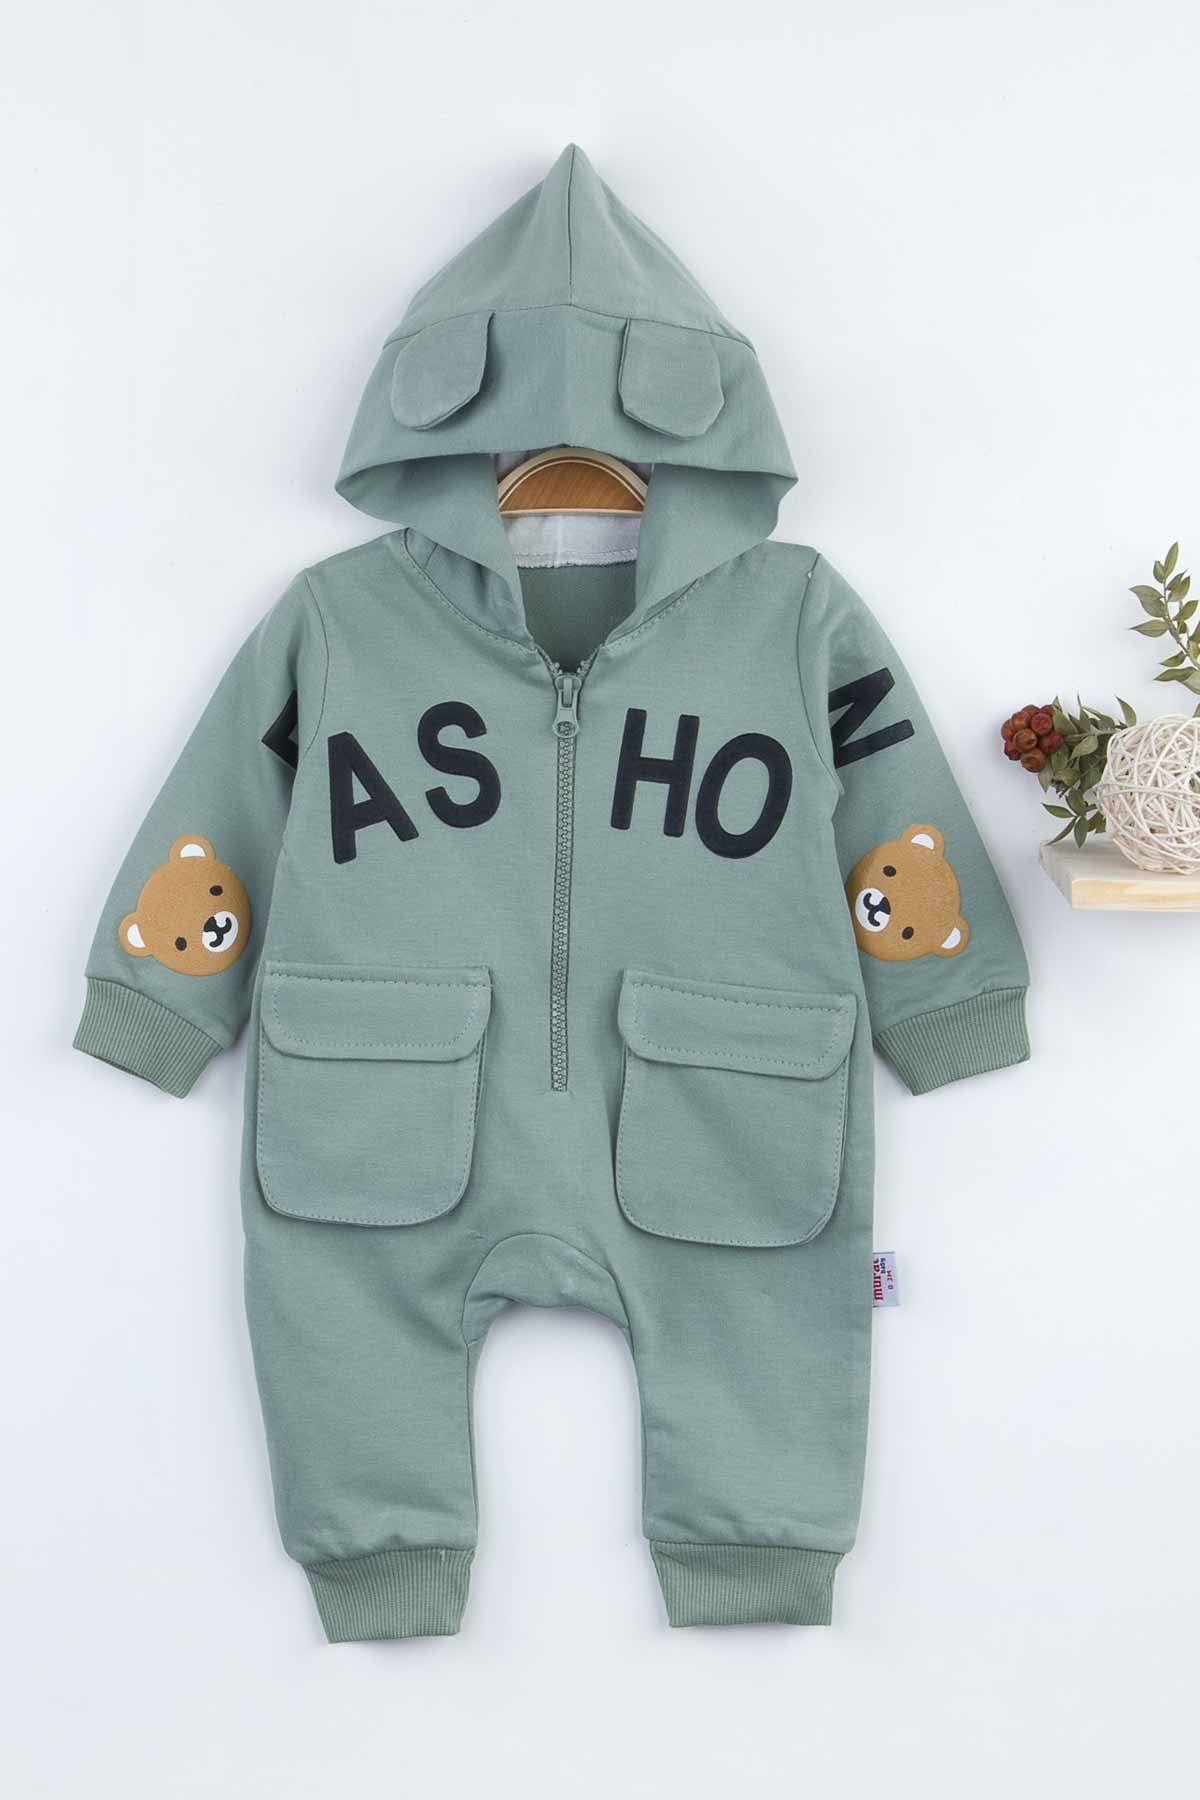 Green Hooded Baby Boy Rompers Fashion 2021 New Season Style Babies Clothes Outfit Cotton Comfortable Underwear for Boys Baby